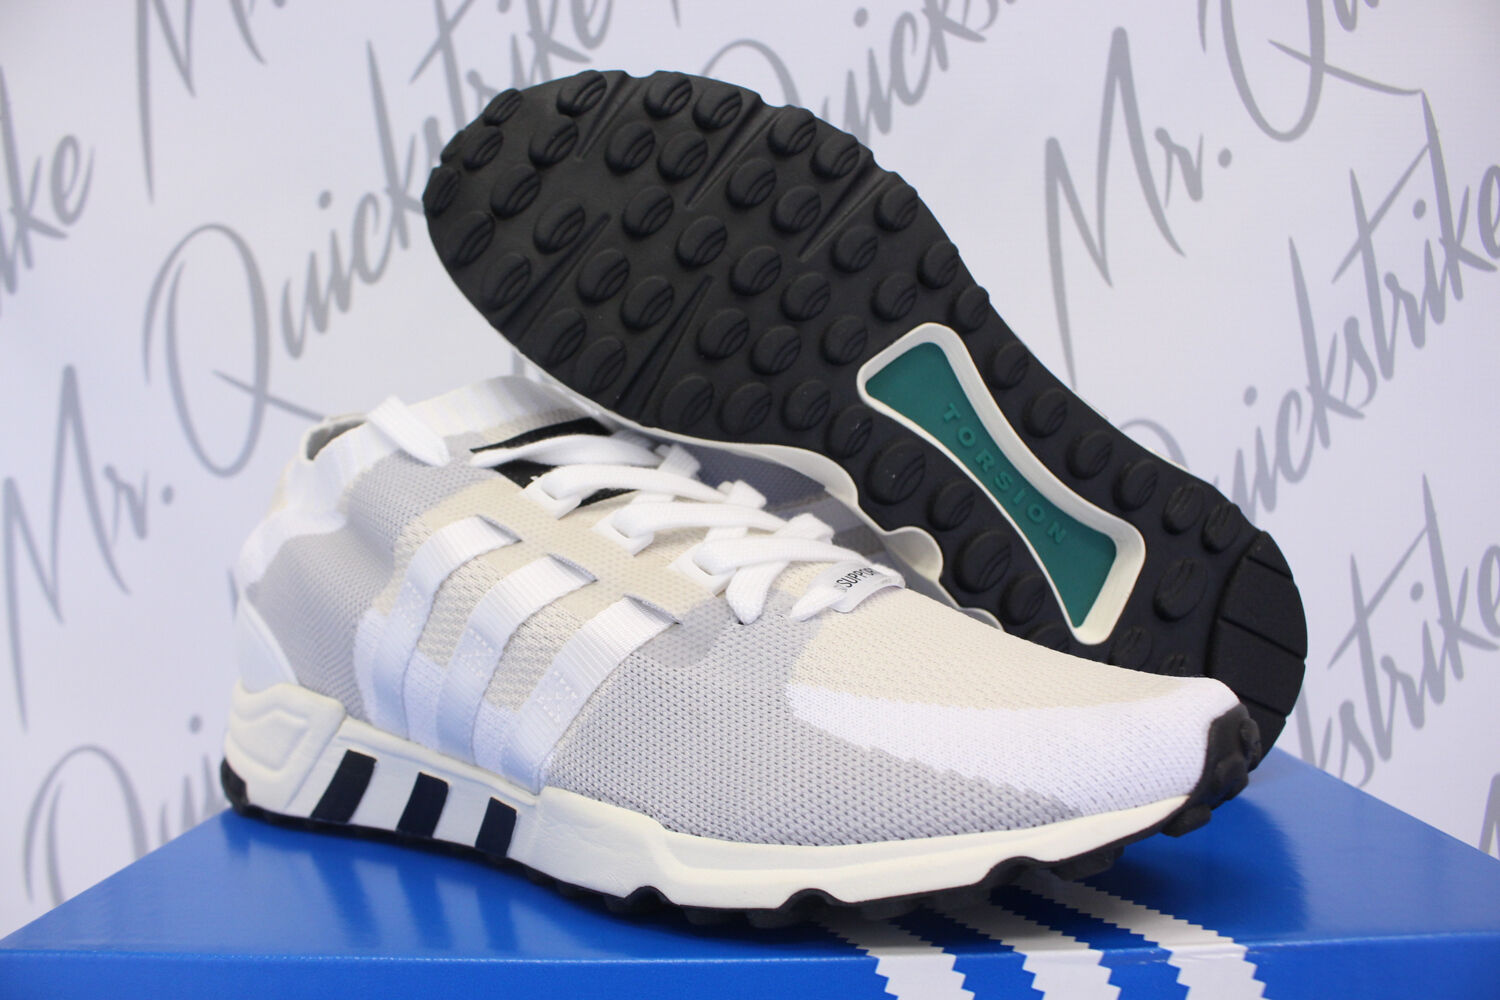 ADIDAS EQT SUPPORT RF PRIMEKNIT SZ 8.5 WHITE CORE BLACK OFF WHITE PK BA7507